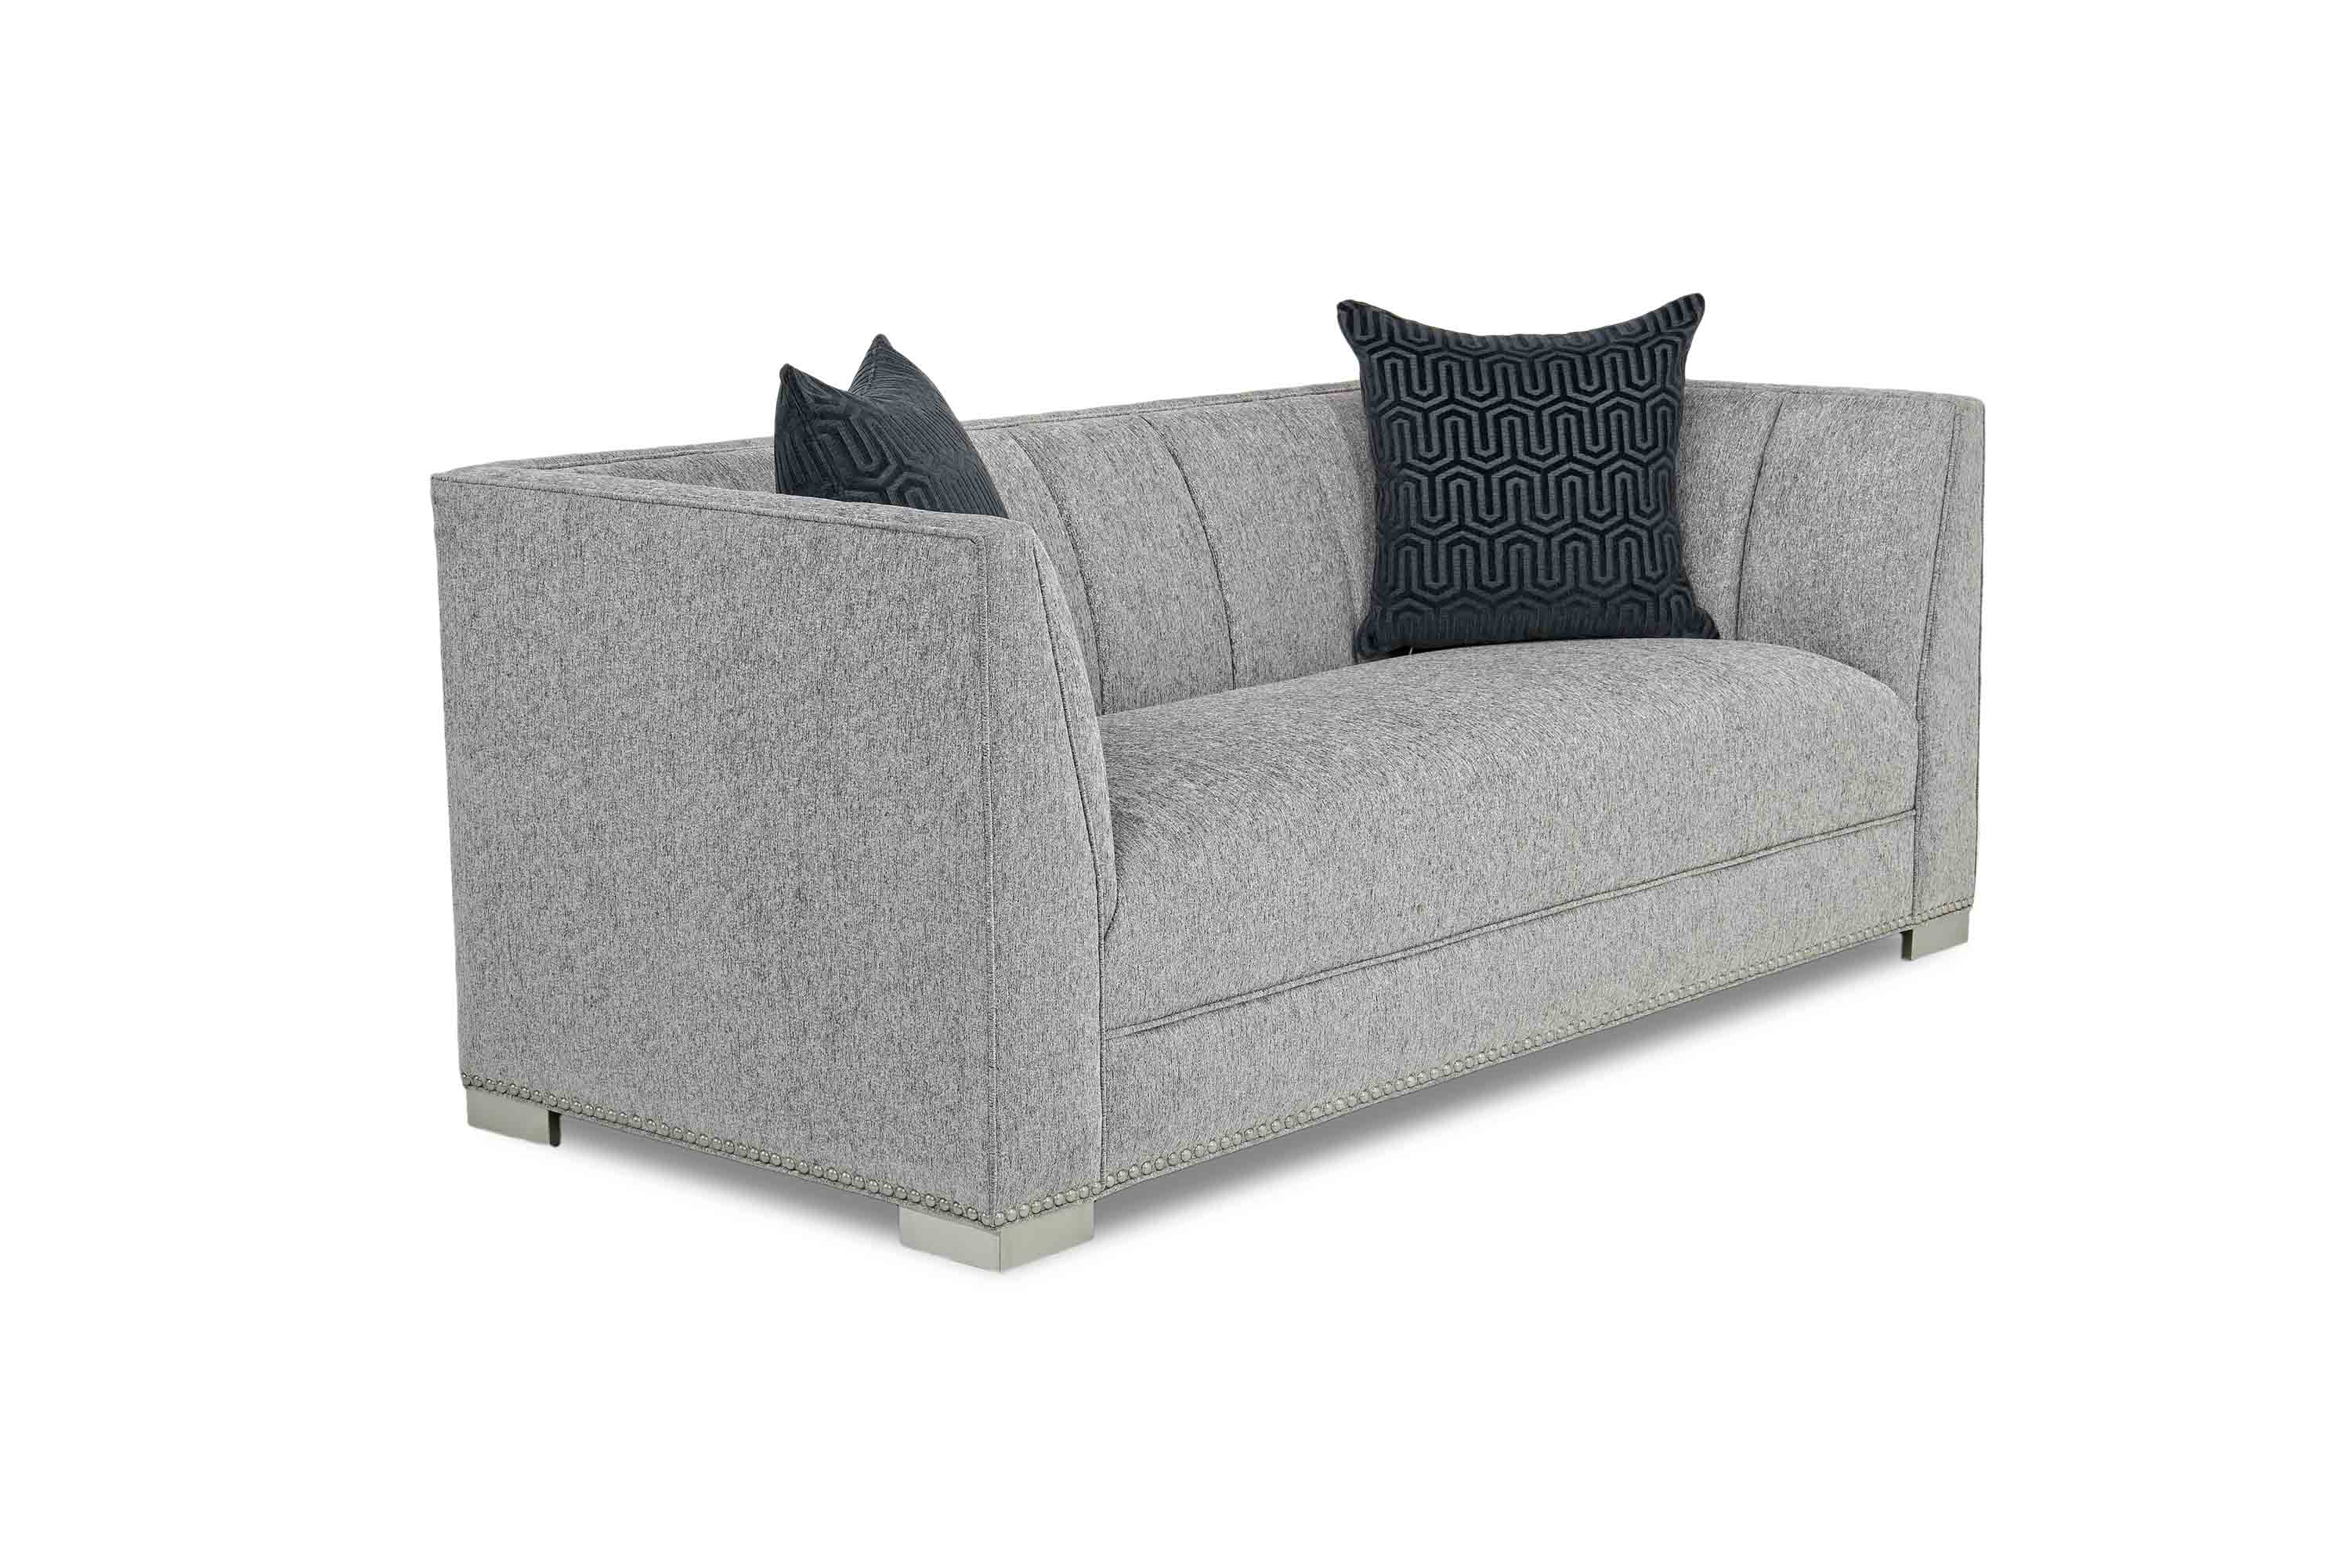 Sofa O Sillon Living Room Furniture Mor Furniture For Less